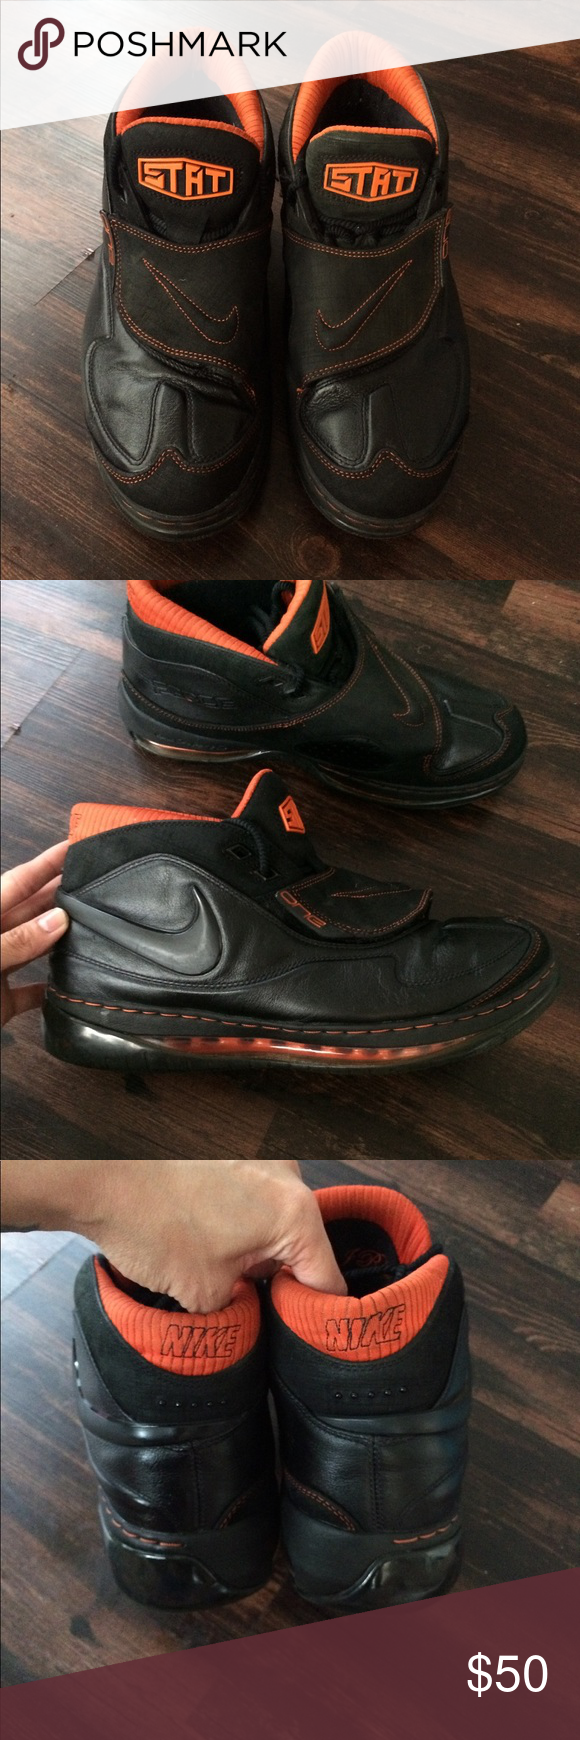 separation shoes 1d7f5 151eb Nike Air Force one STAT Deadstock Amare Nike Air Force one STAT Deadstock  Amare Stoudemire Max Shoes Size 10.5 good condition clean well kept Nike  Shoes ...